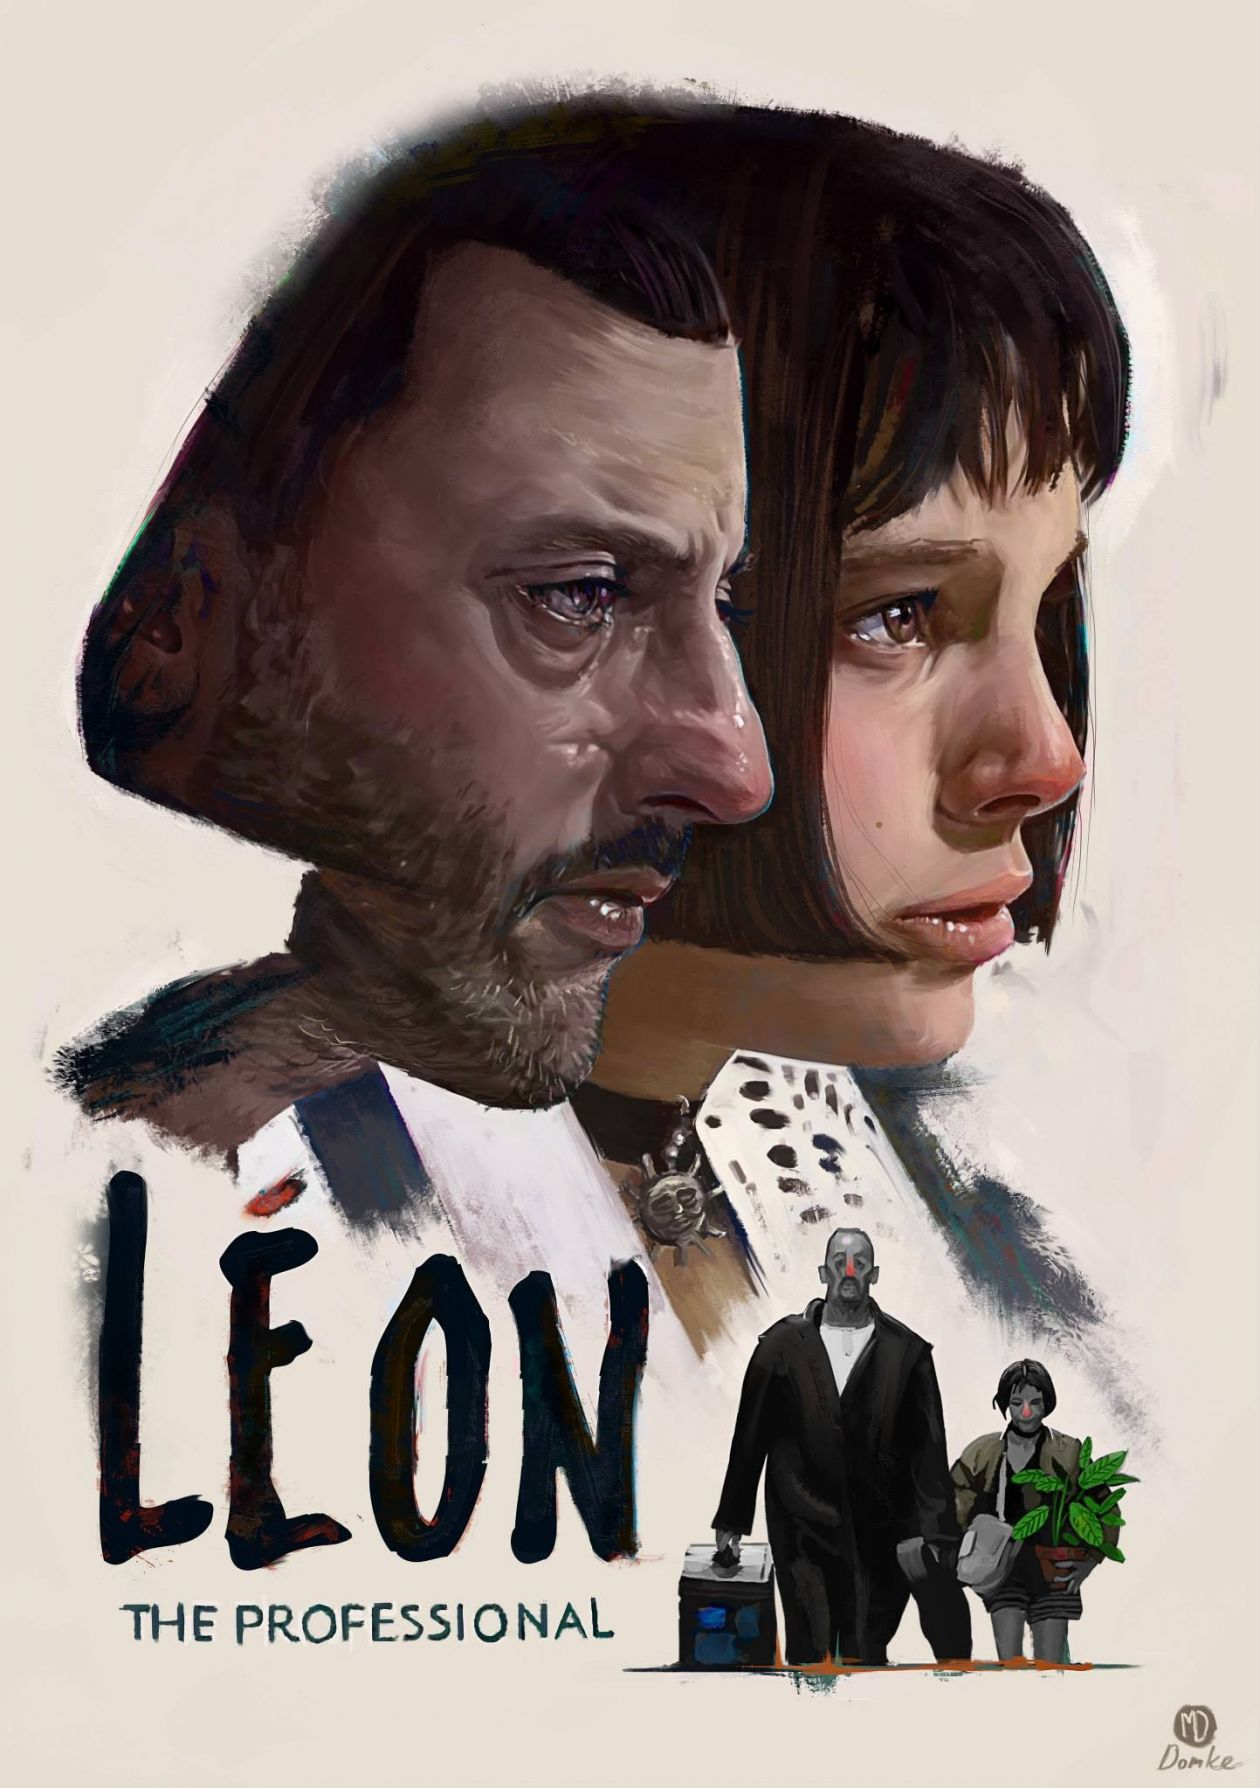 NATALIE PORTMAN / Léon: The Professional / LUC BESSON 1994 MOVIE POSTER / AFFICHE FILM